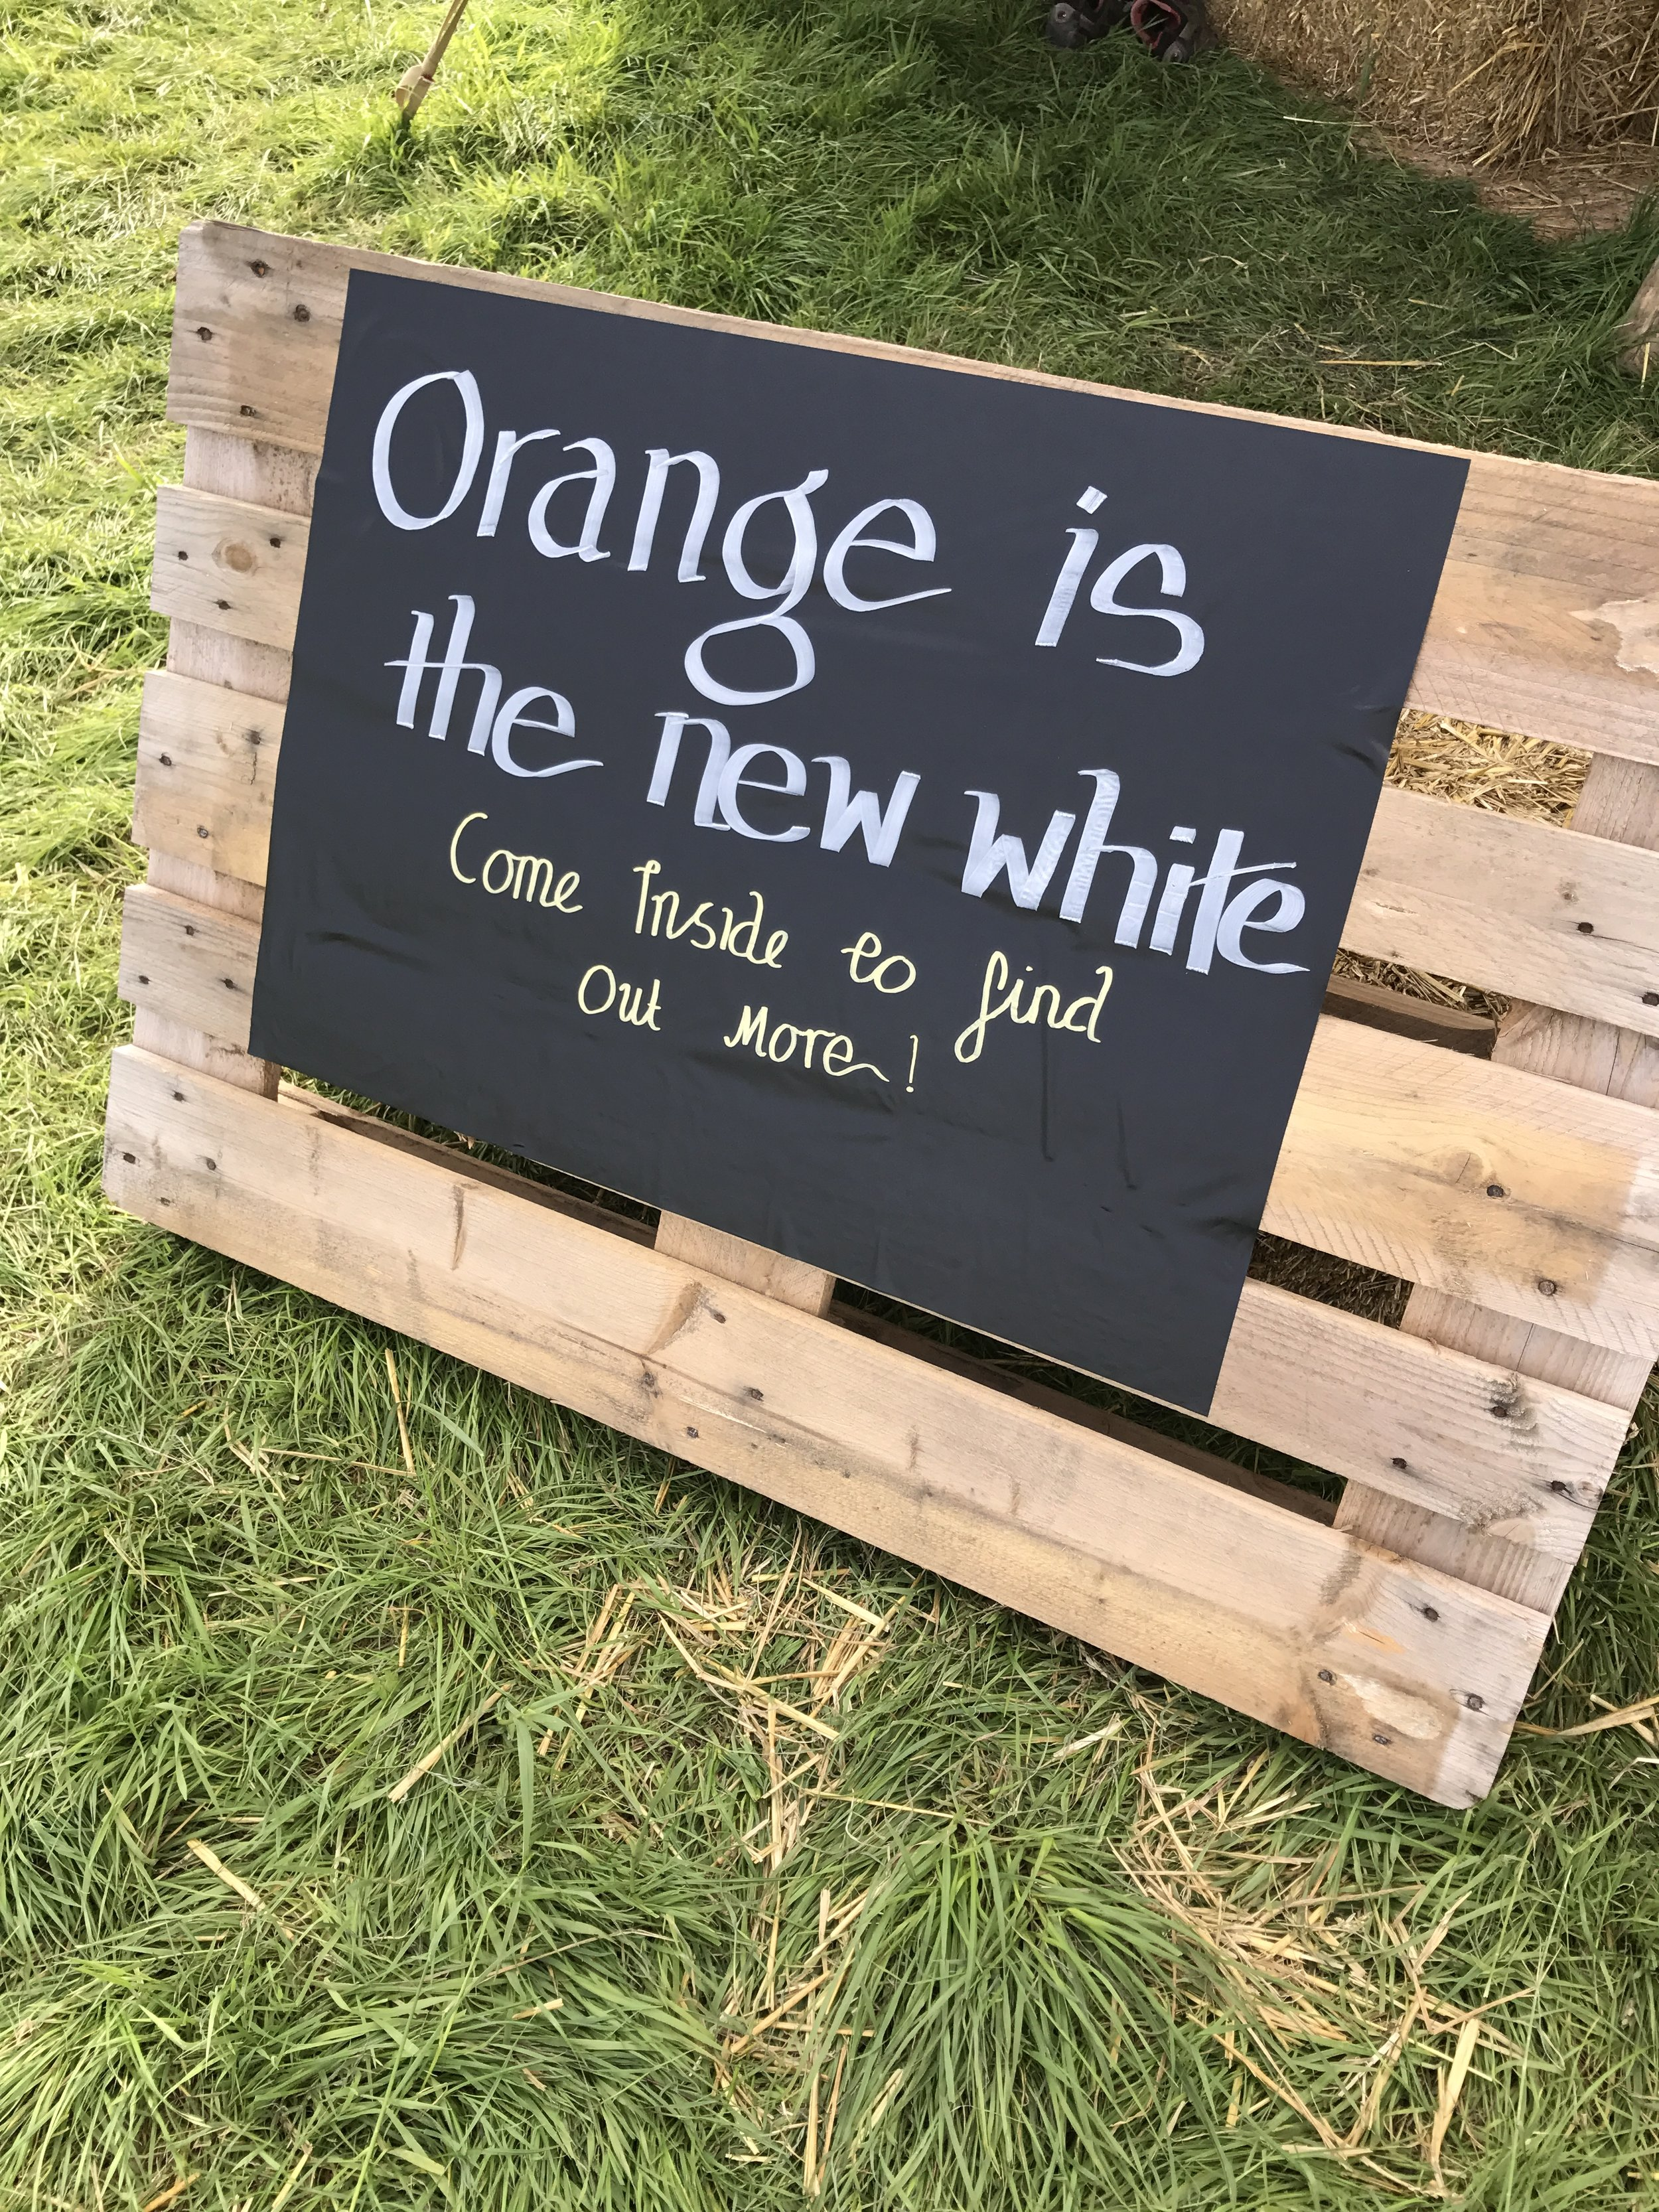 5. Orange is the new white when it comes to wine